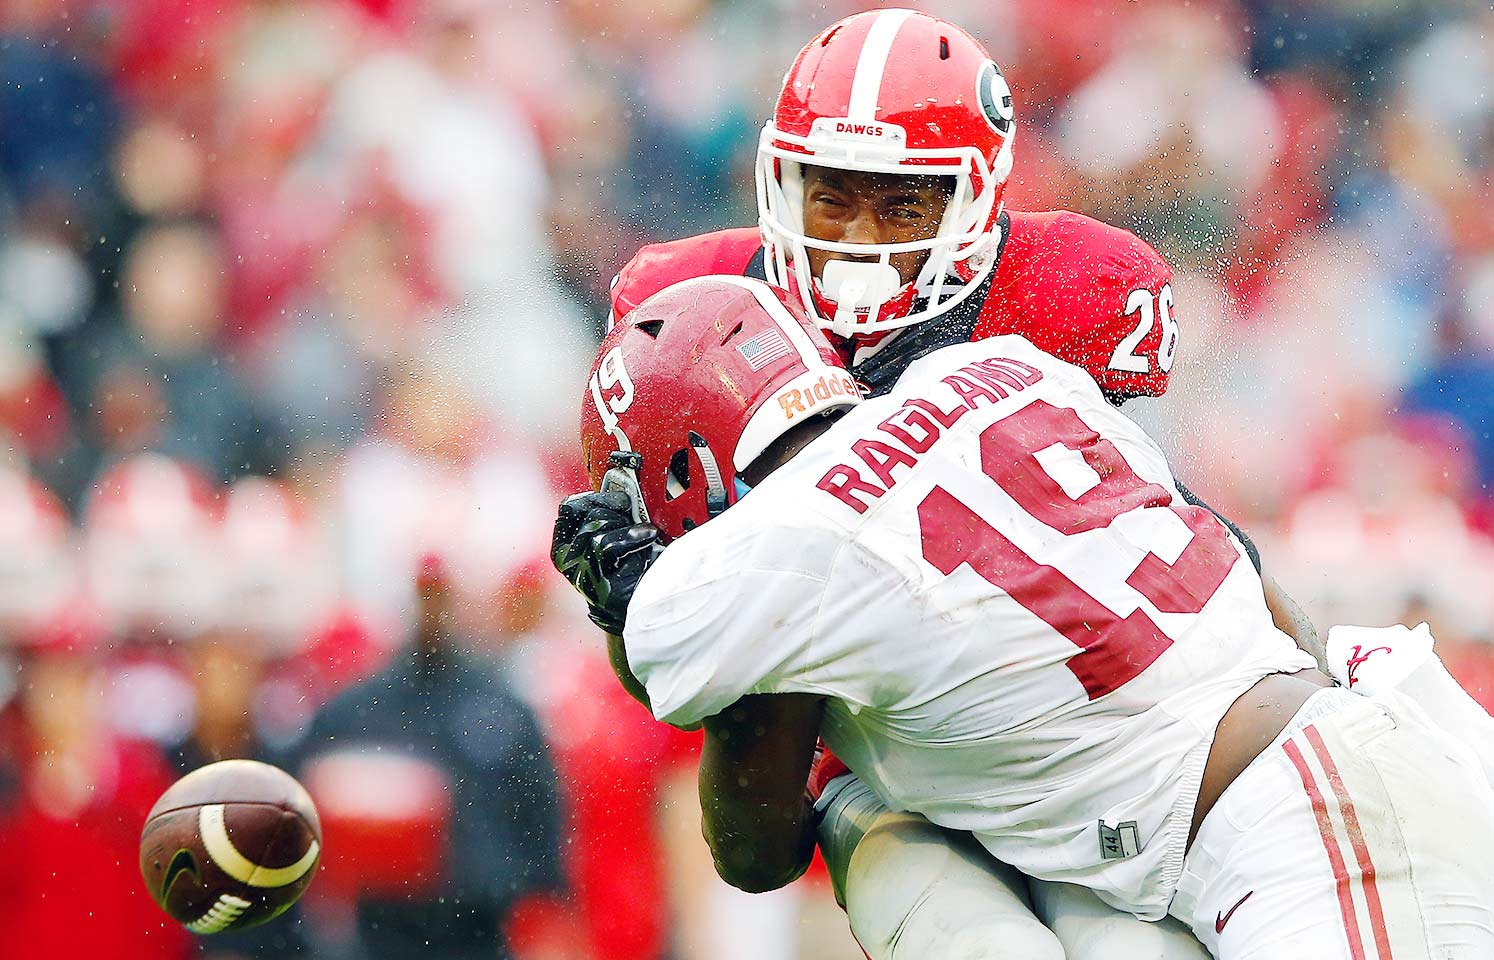 Alabama 38, Georgia 10: A highly anticipated matchup with the unbeaten Bulldogs turned into a rout. The Crimson Tide sent Georgia starting quarterback Greyson Lambert to the bench, contained vaunted running back Nick Chubb for all but one meaningless late touchdown run and moved the ball efficiently on offense. Even special teams got into the mix with a touchdown for Minkah Fitzpatrick on a blocked punt.